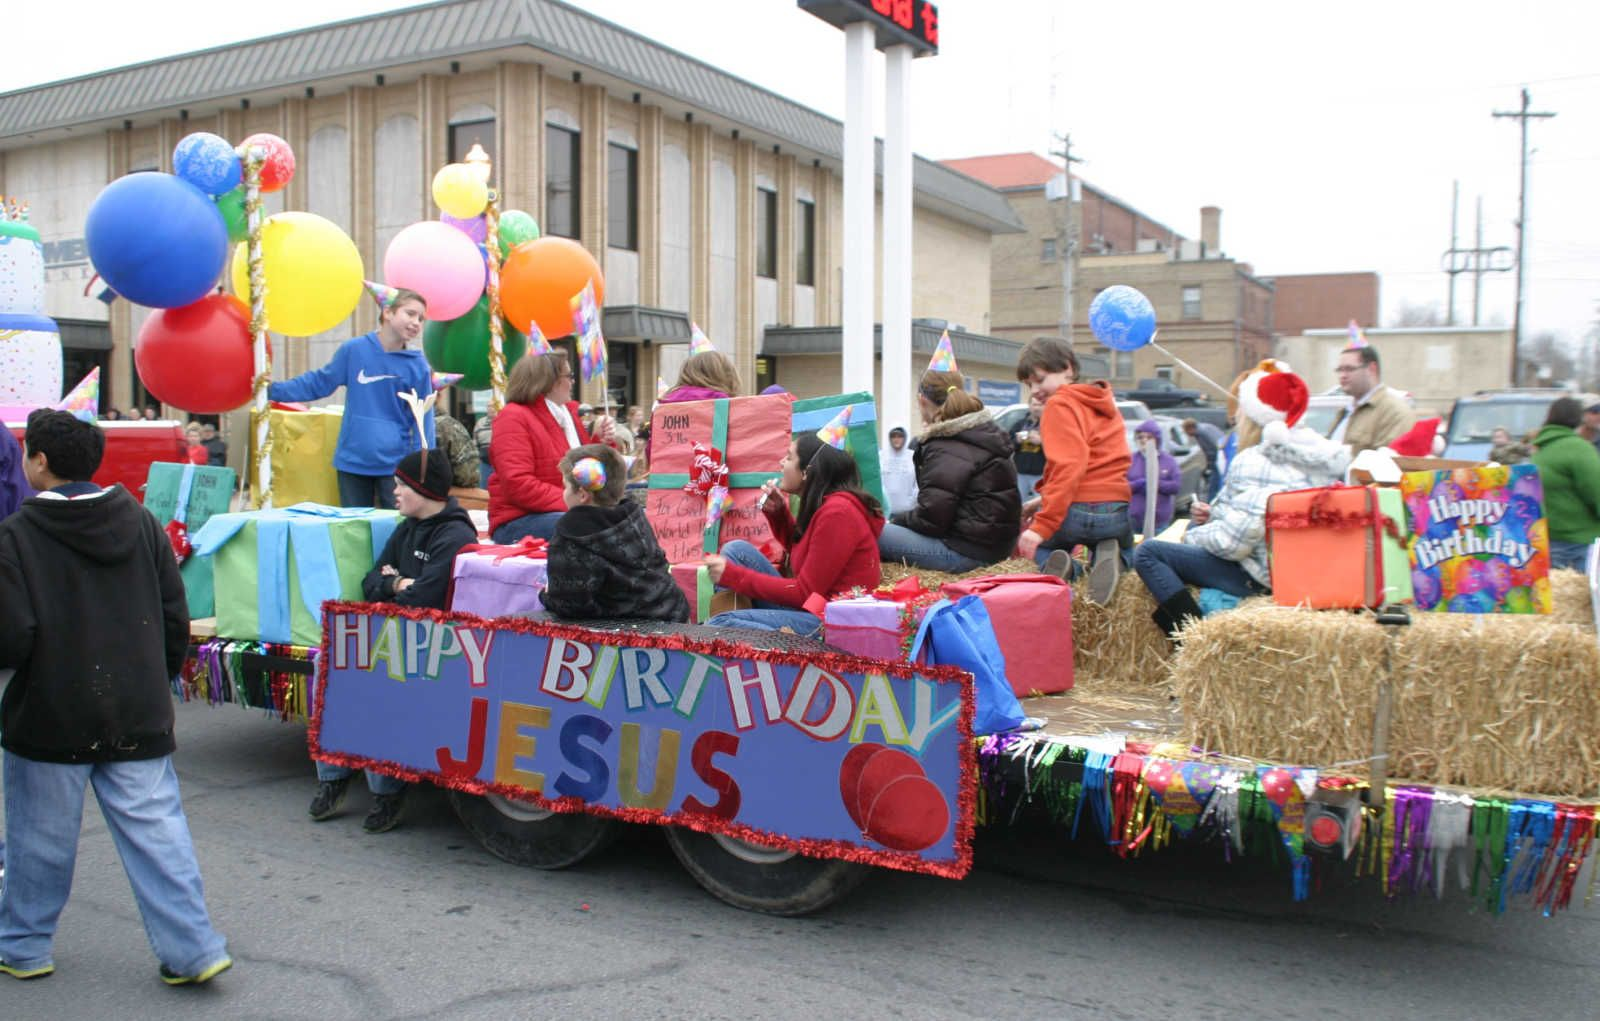 Image Result For Happy Birthday Jesus Float